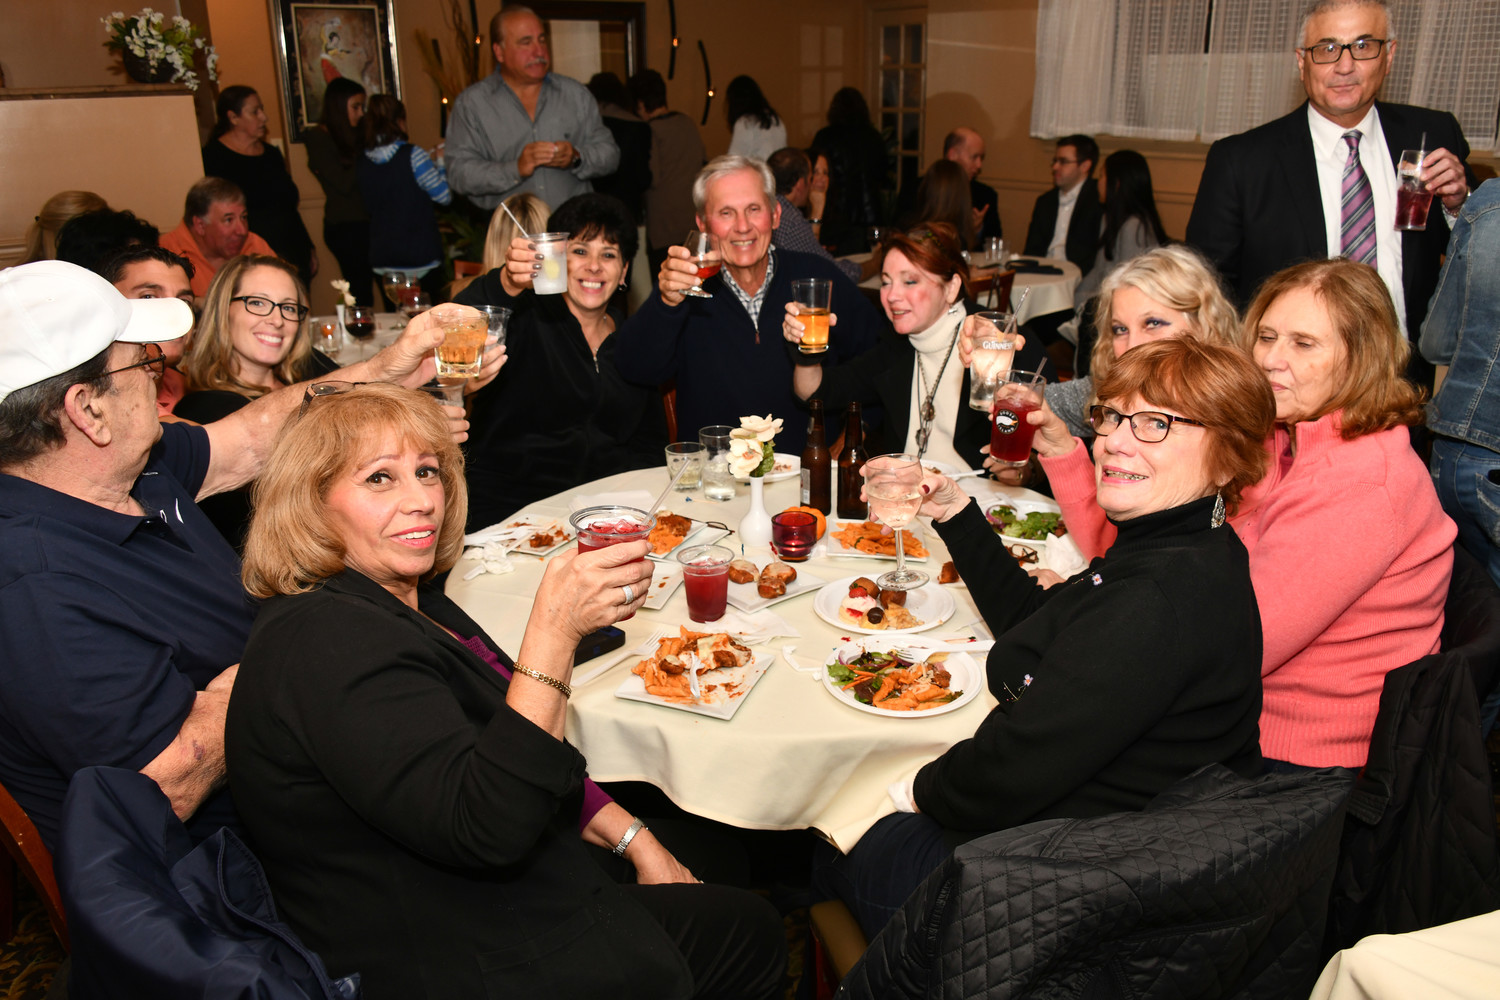 Supporters of the Mayor make a toast at The View Grill on election night.